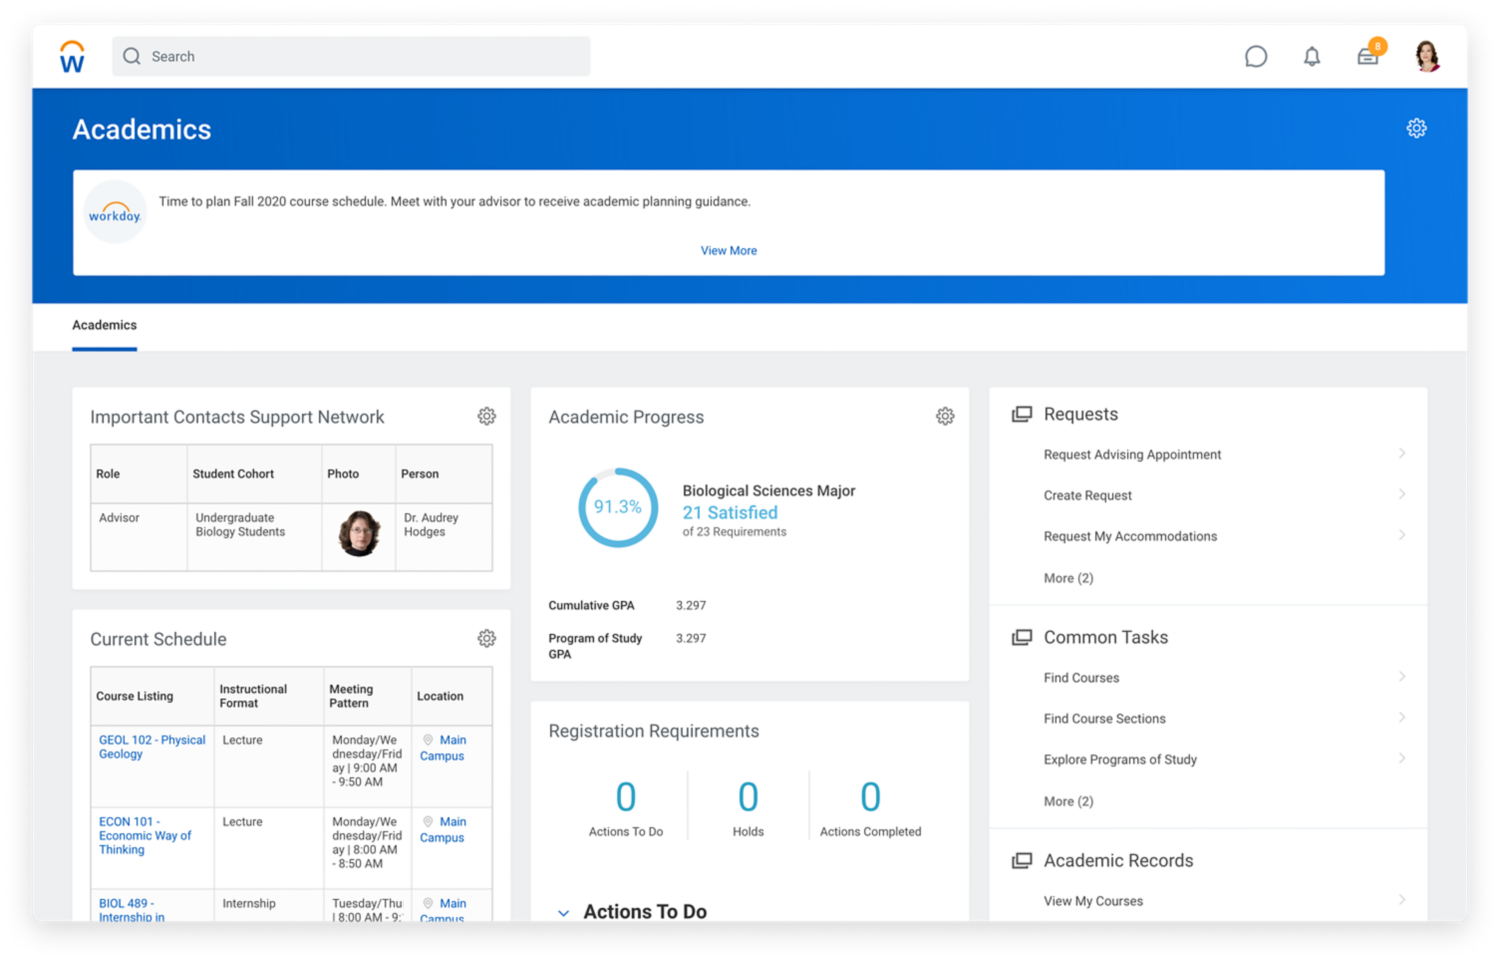 Academics dashboard showing support network contacts, schedule, progress, and registration requirements.